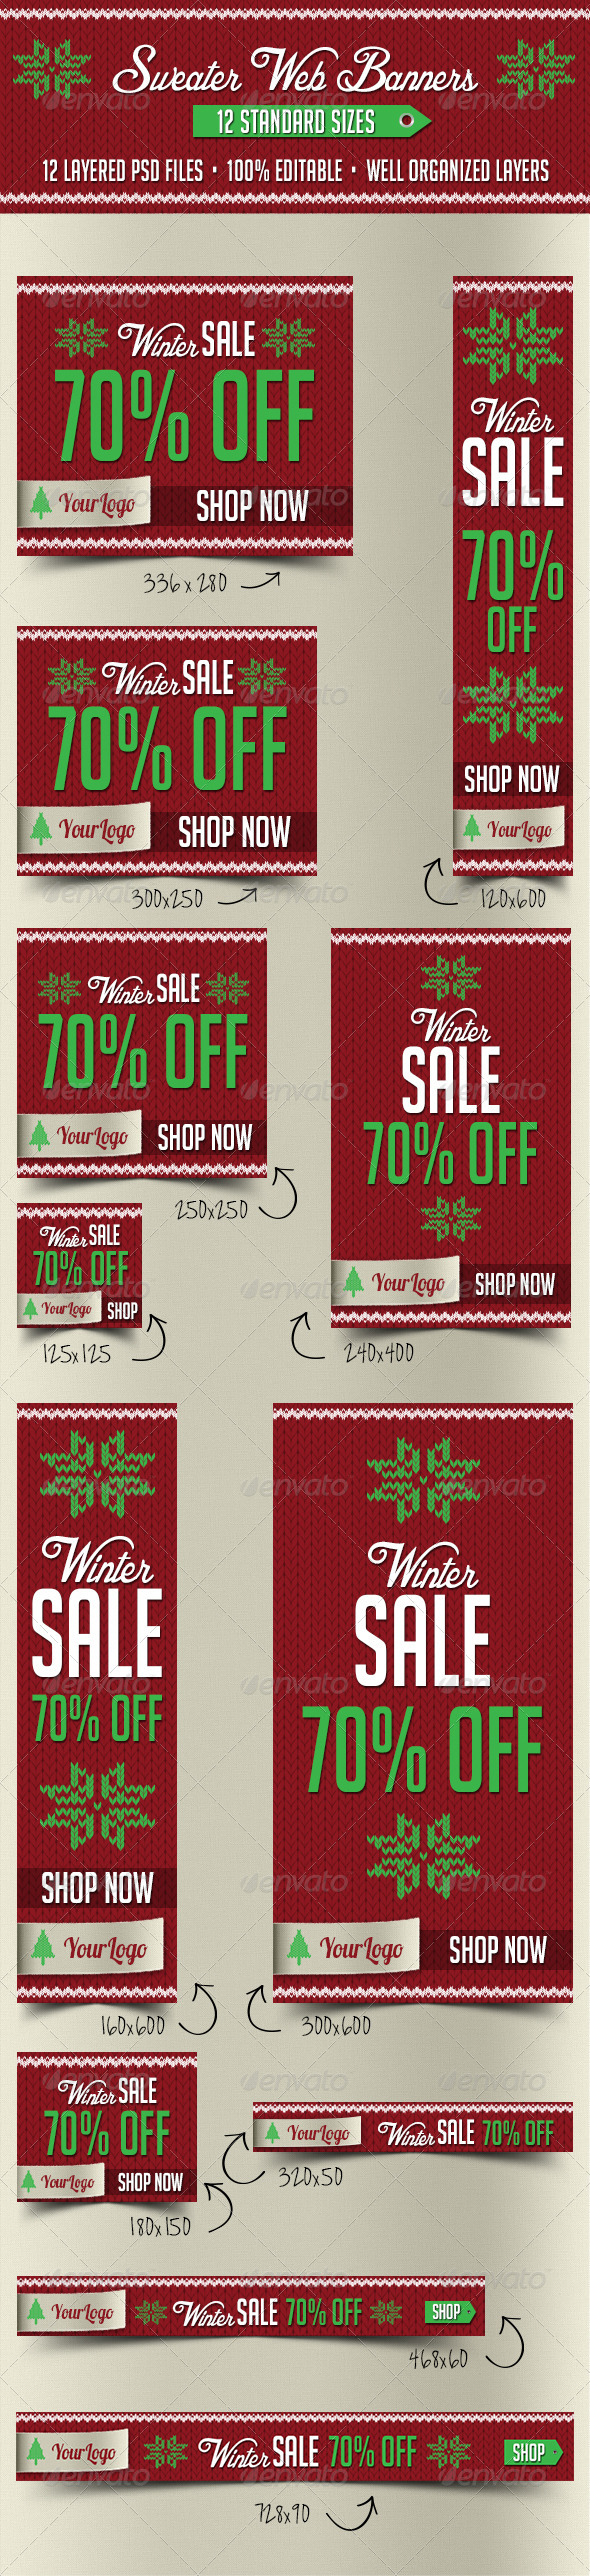 GraphicRiver Sweater Web Banners 6254327